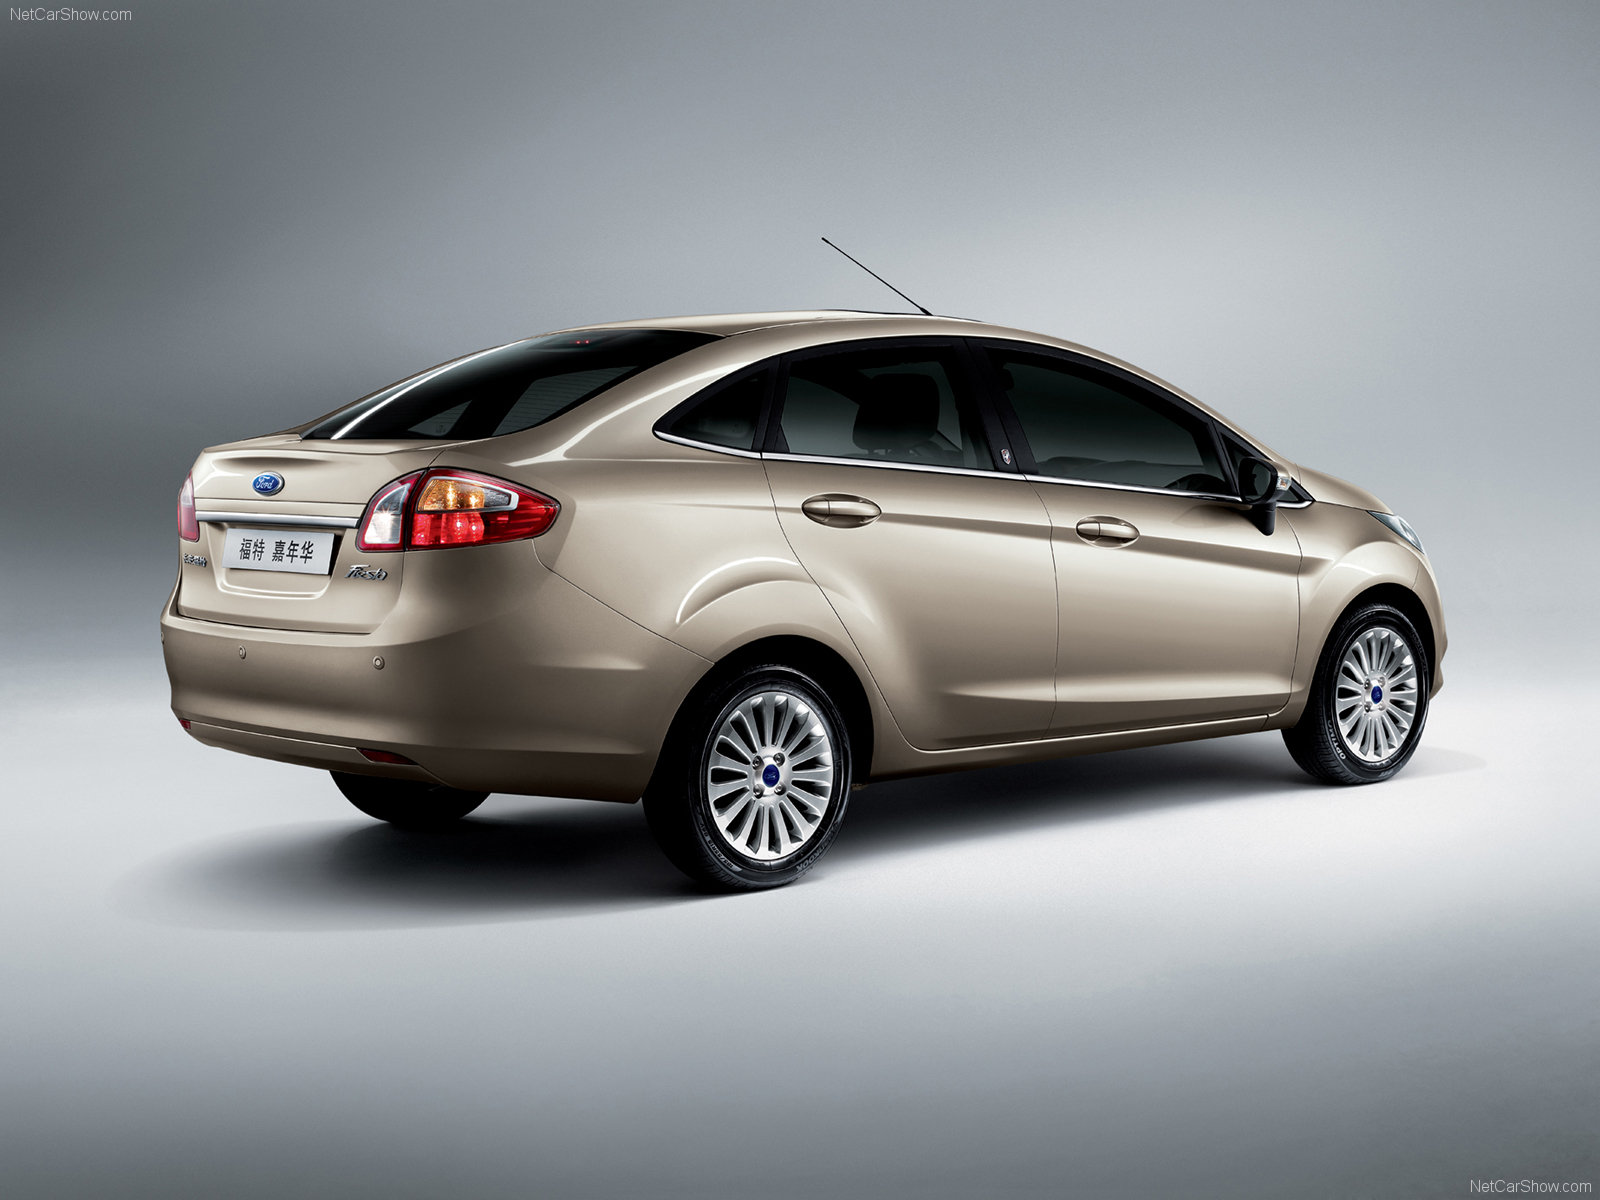 http://3.bp.blogspot.com/_aYHy9i_CR0Y/Swp1etYcvqI/AAAAAAAABcA/6eaRpbqROws/s1600/Ford-Fiesta_Sedan_2010_1600x1200_wallpaper_03.jpg